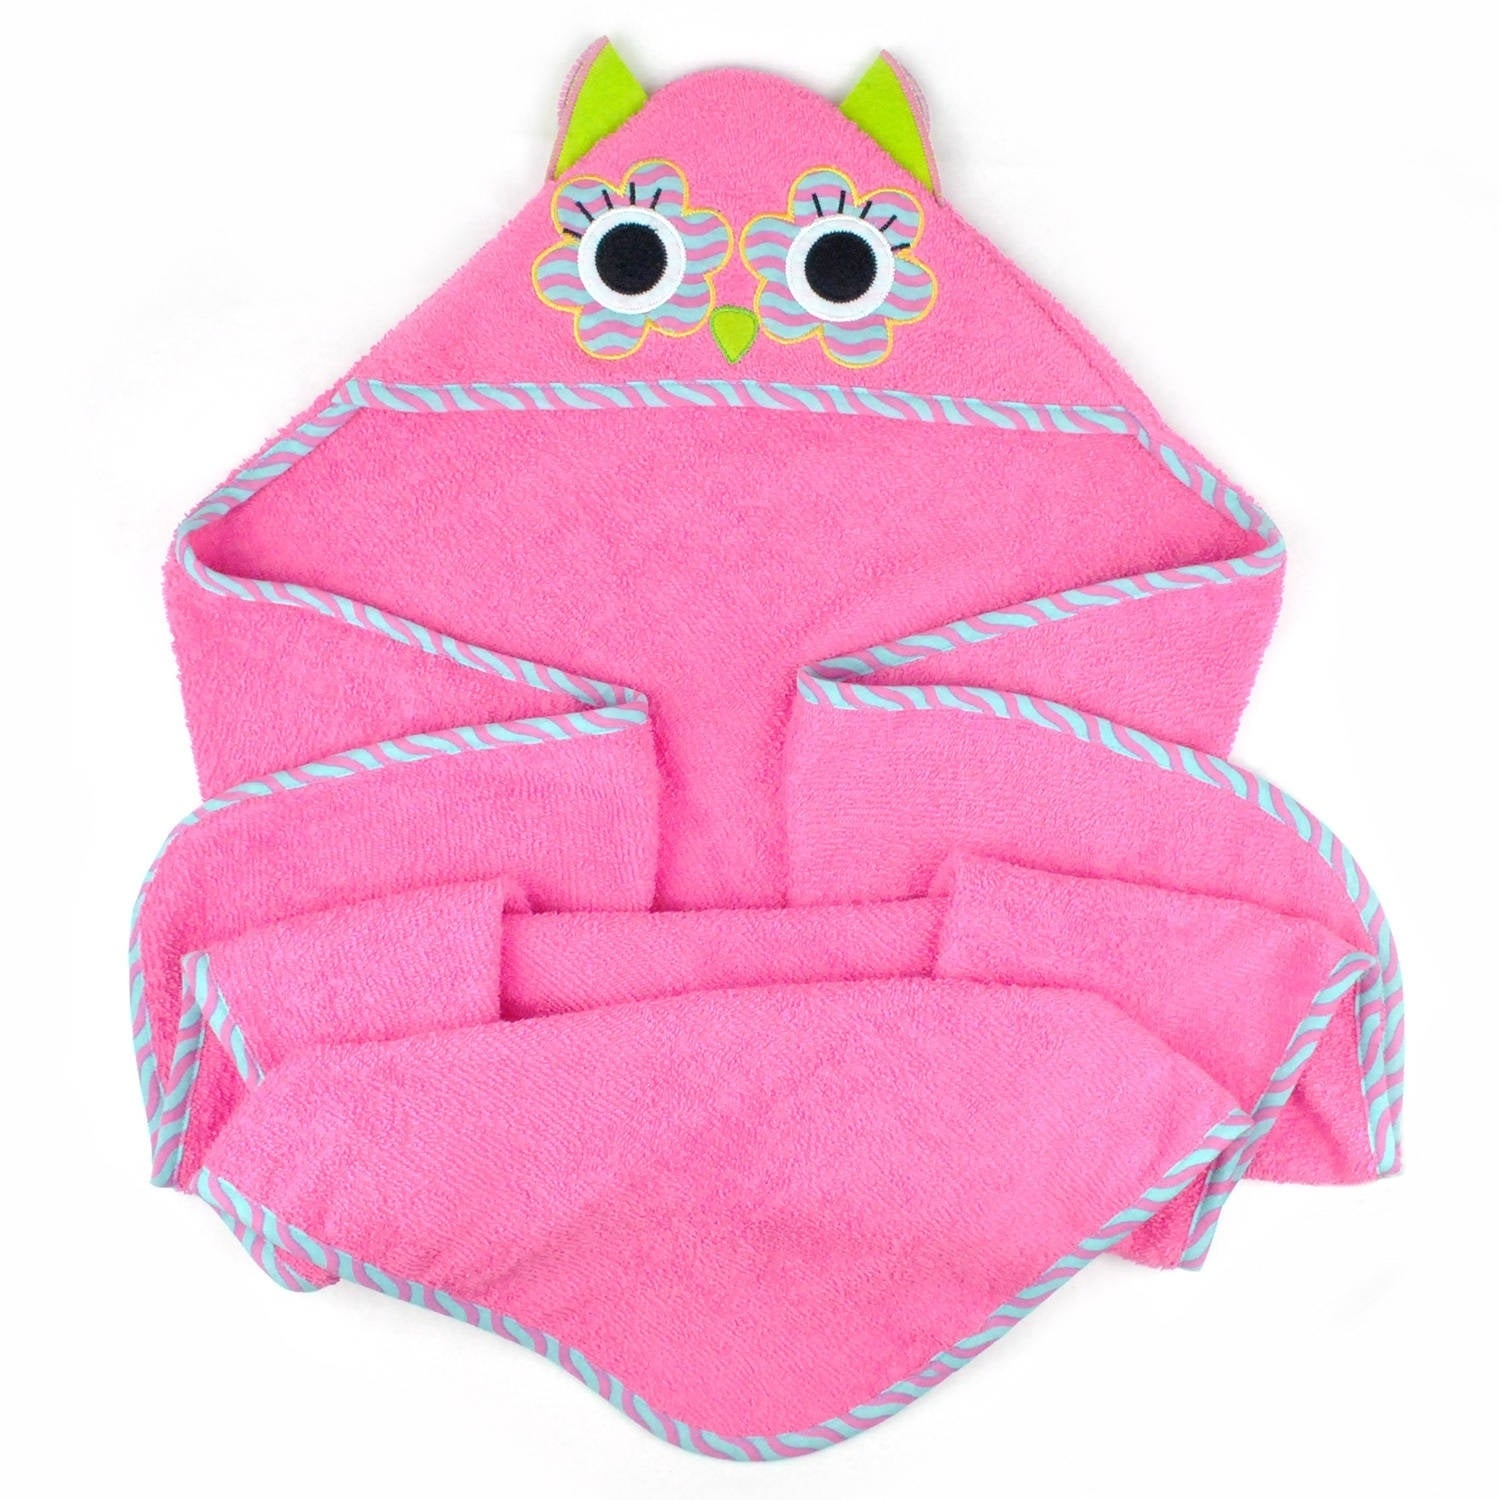 Kids Hooded Bath Towel (Pink Owl), Blue